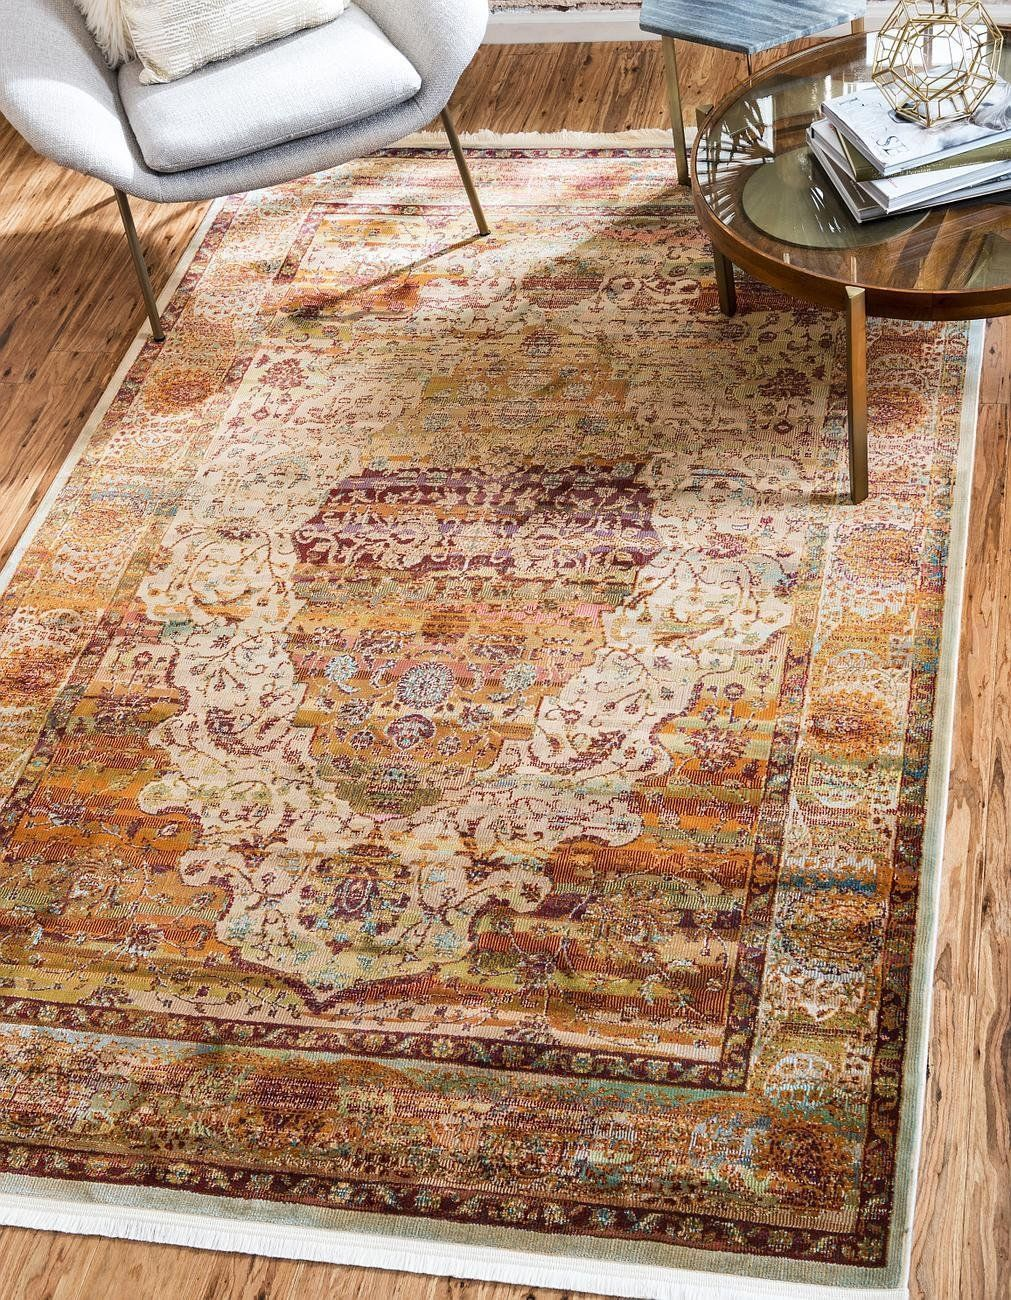 A2z Rug Cream 2 7 X 10 Feet Runner St Tropez Collection Traditional And Modern Area Rugs Carpet Click Image To Review More Details